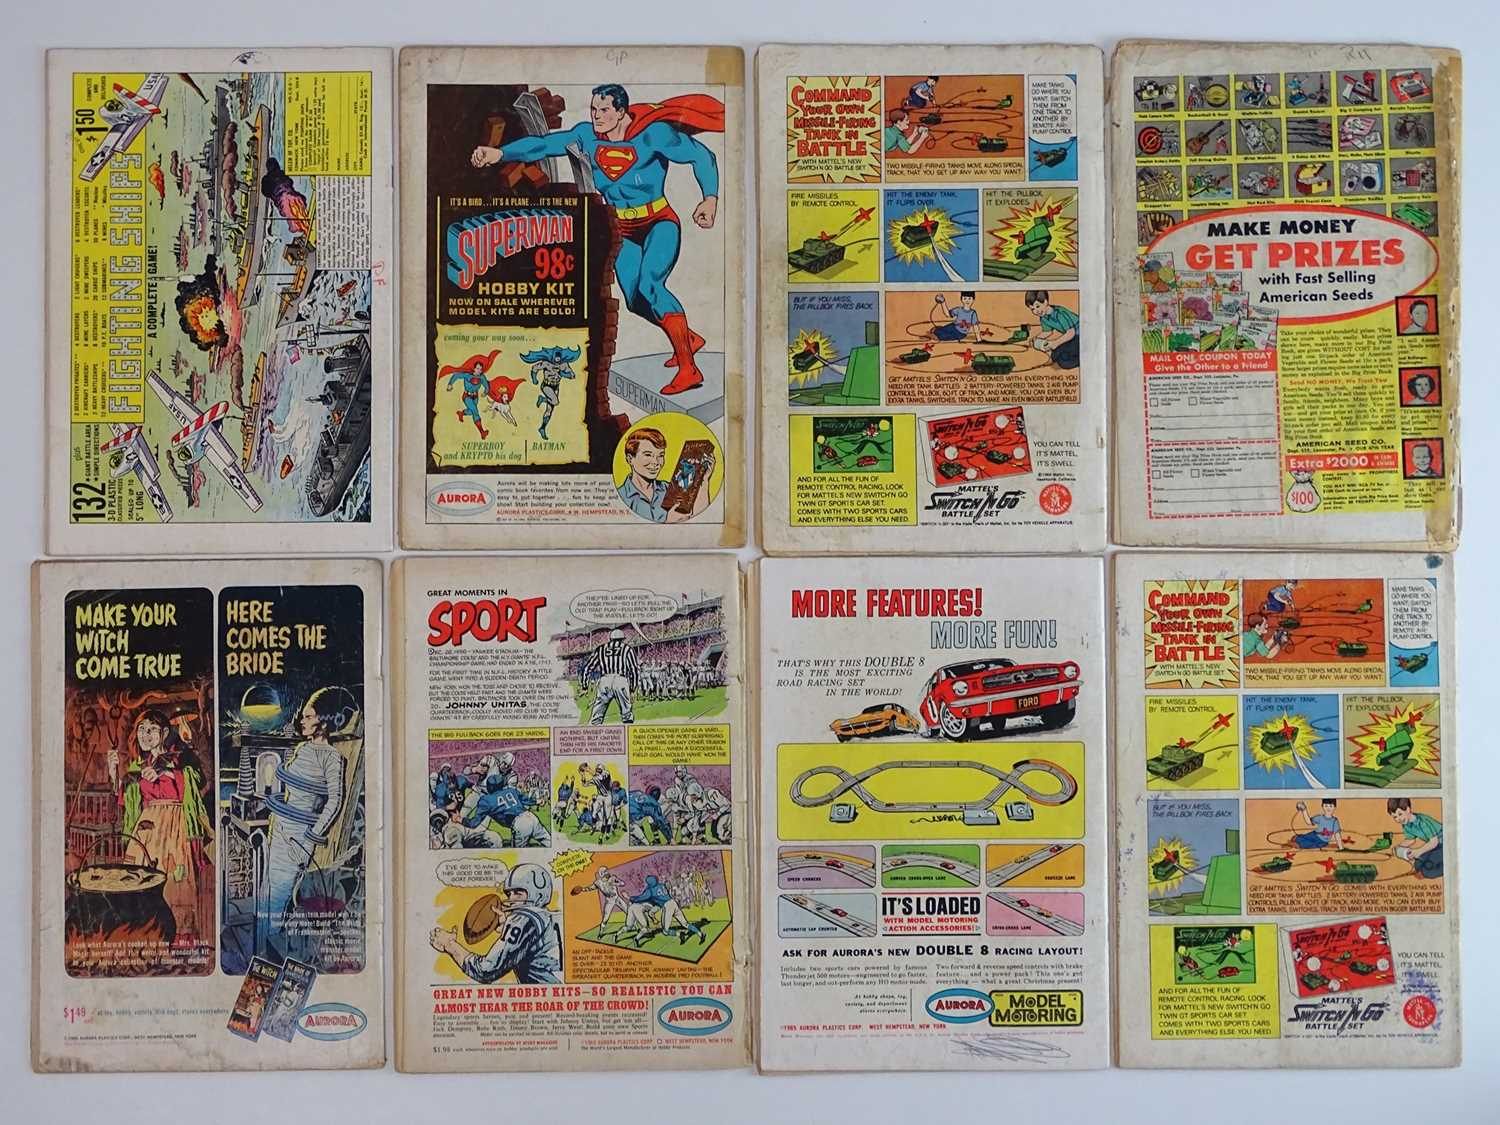 ATOM #13, 16, 17, 18, 21, 22, 23, 26 - (8 in Lot) - (1964/66 - DC - UK Cover Price) - Includes - Image 2 of 2